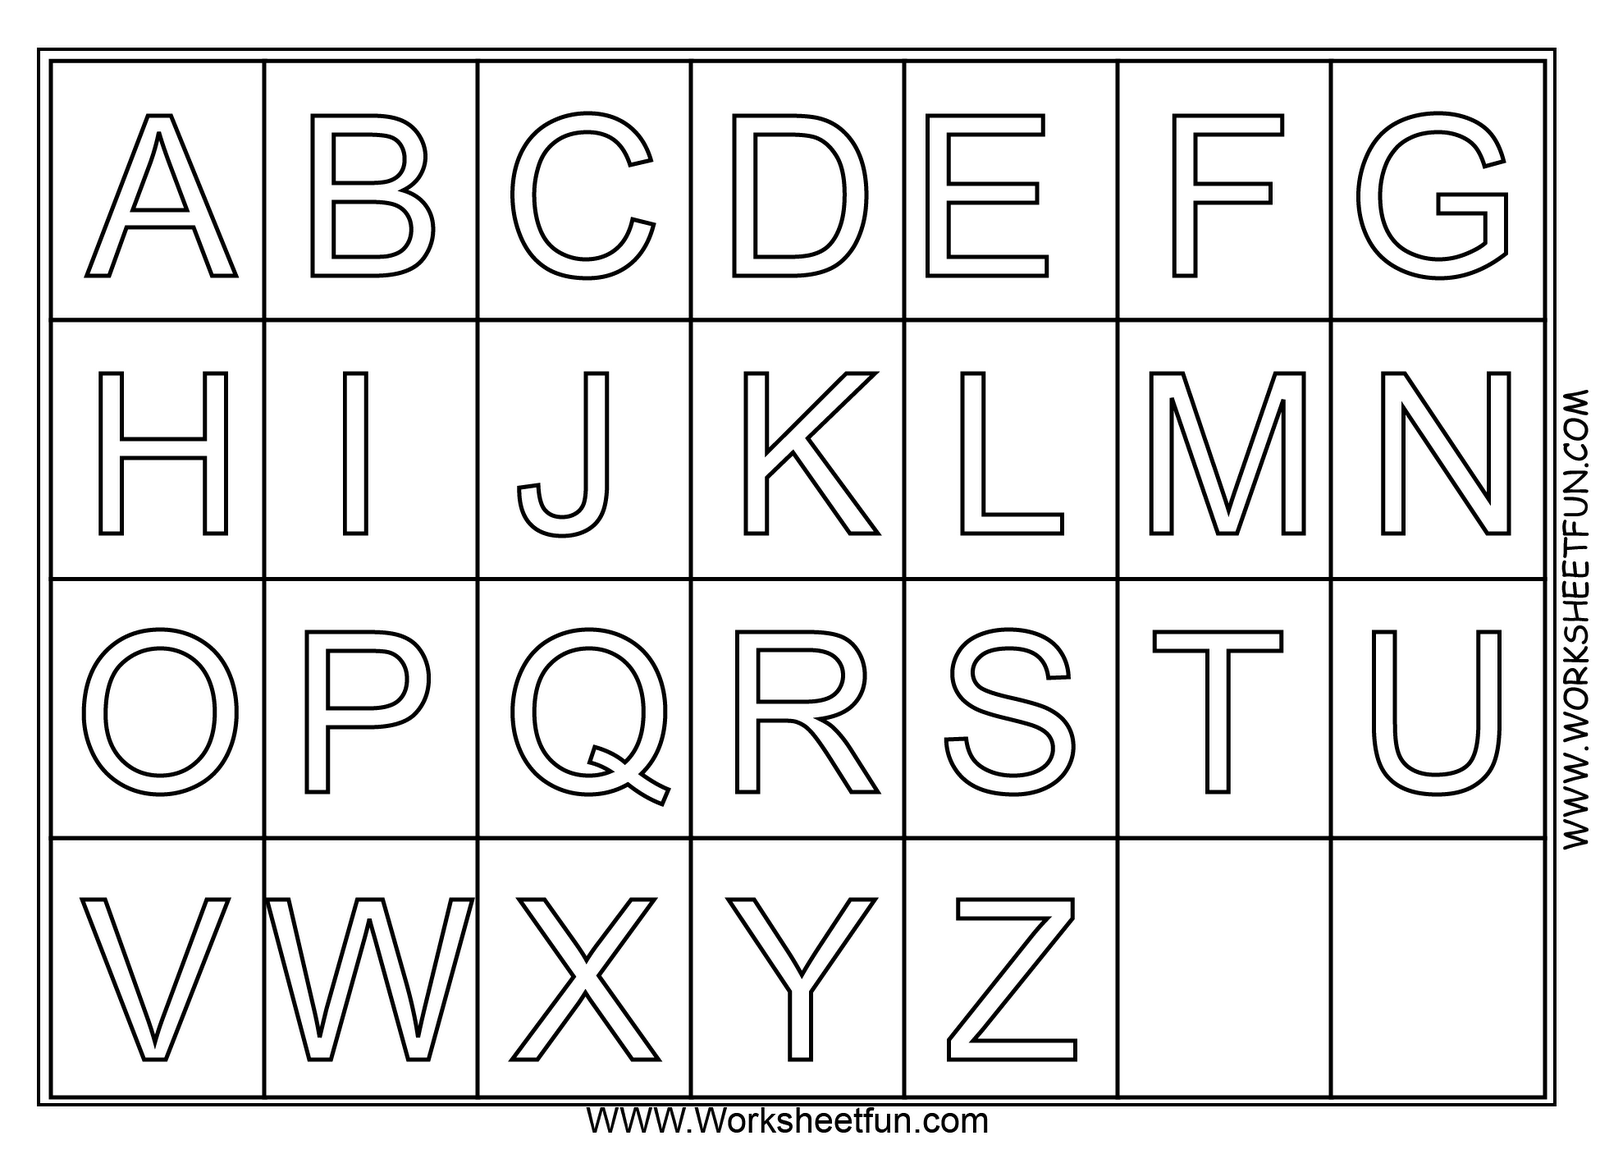 Worksheets Abc Worksheets For Pre-k a z alphabet coloring pages download and print for free pre k to worksheet letters worksheets preschool